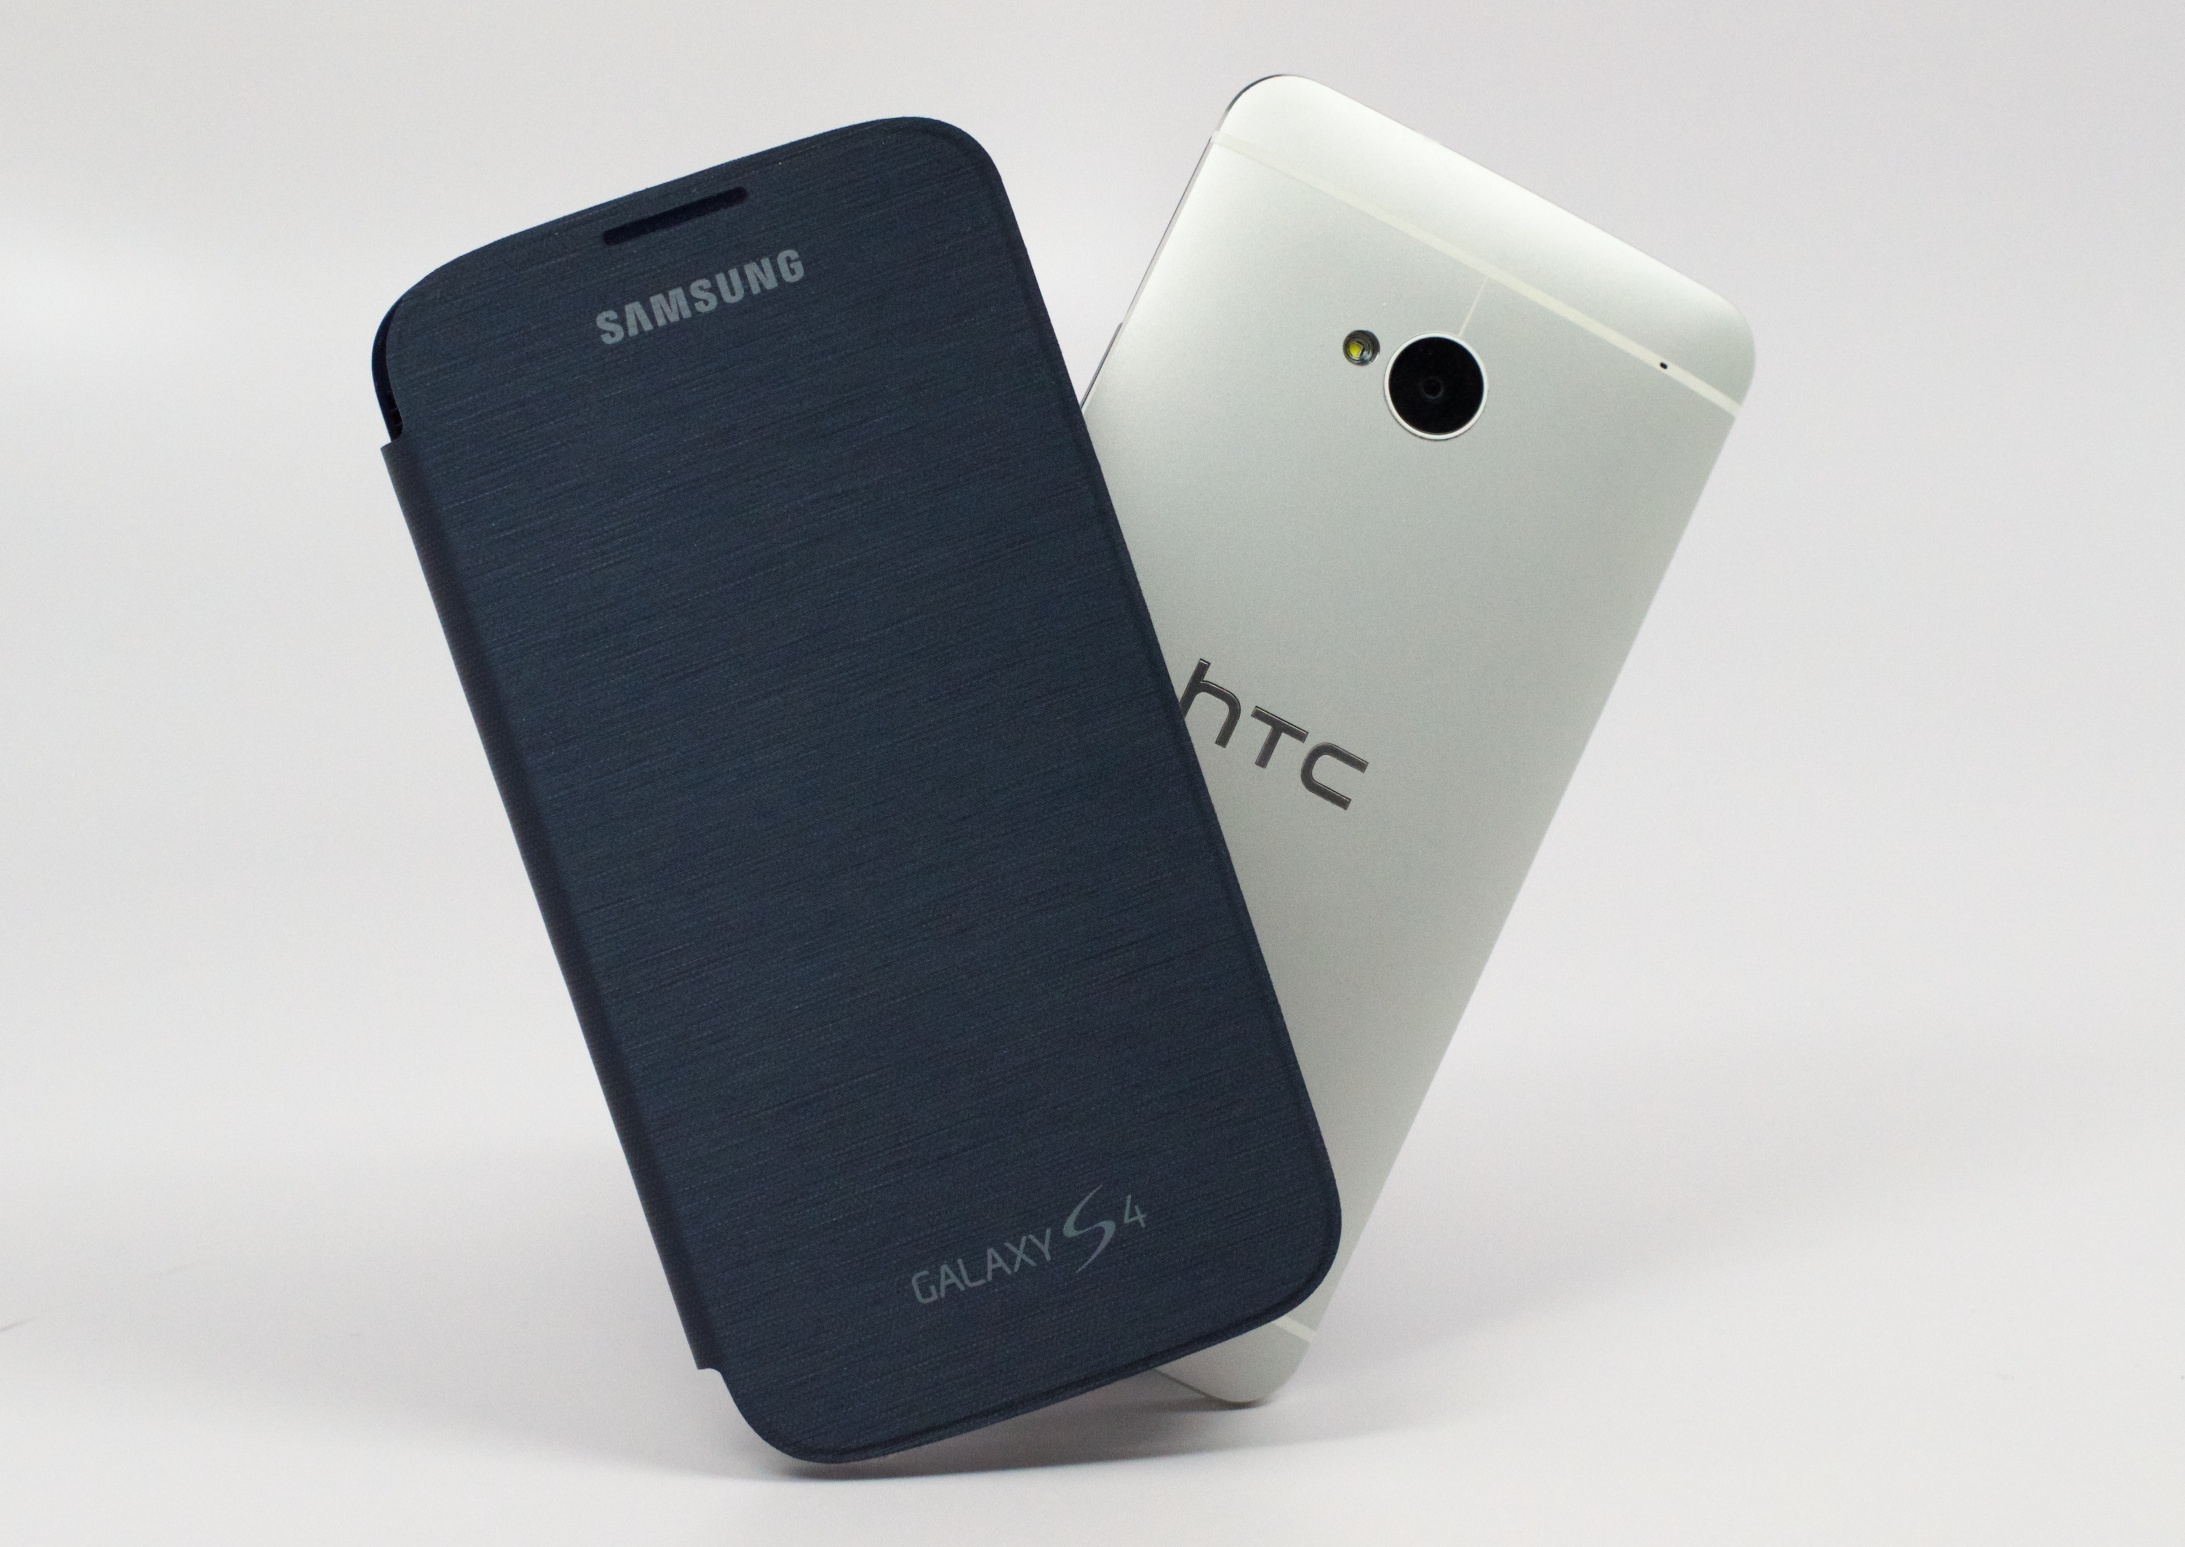 The Samsung Galaxy S4 shipments are set to outpace the HTC One by 5 to 1 in May.